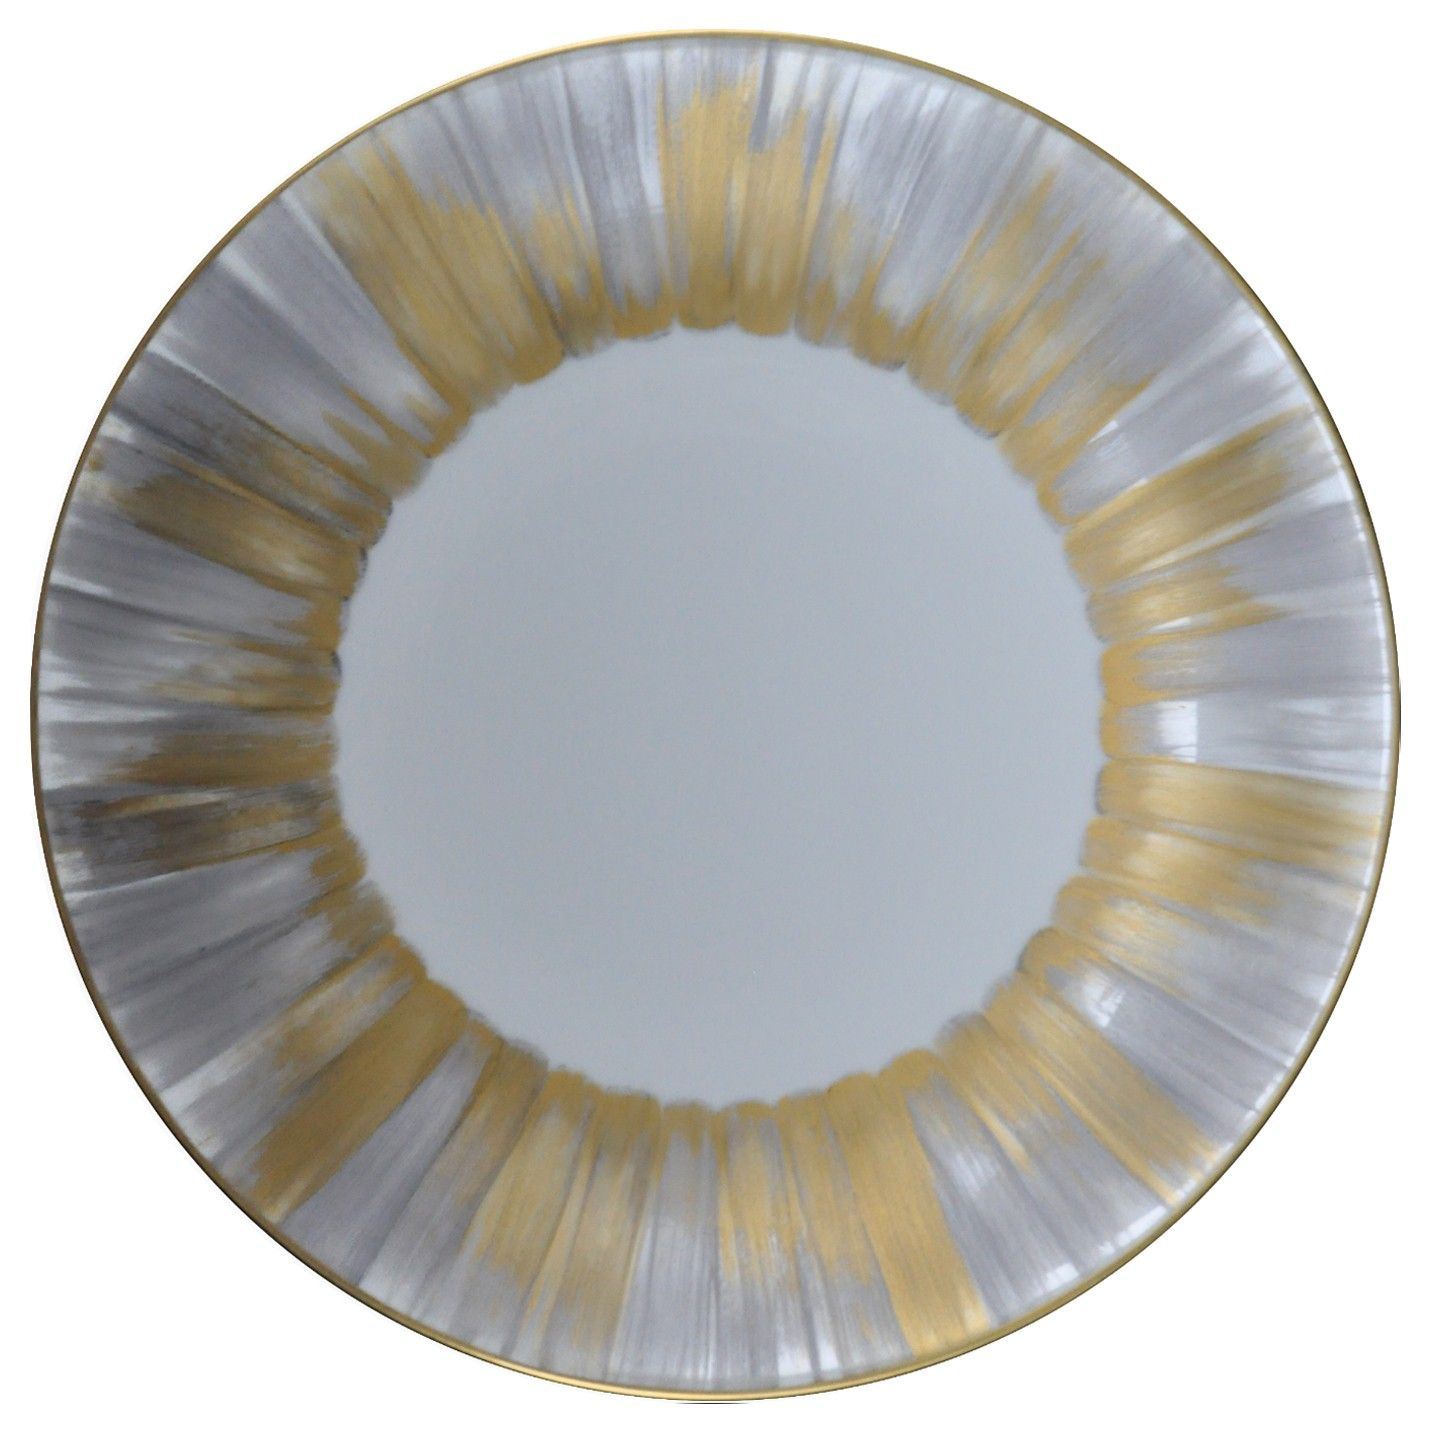 Panache Presentation Plate Silver and Gold | Dinnerware | Jung Lee ...